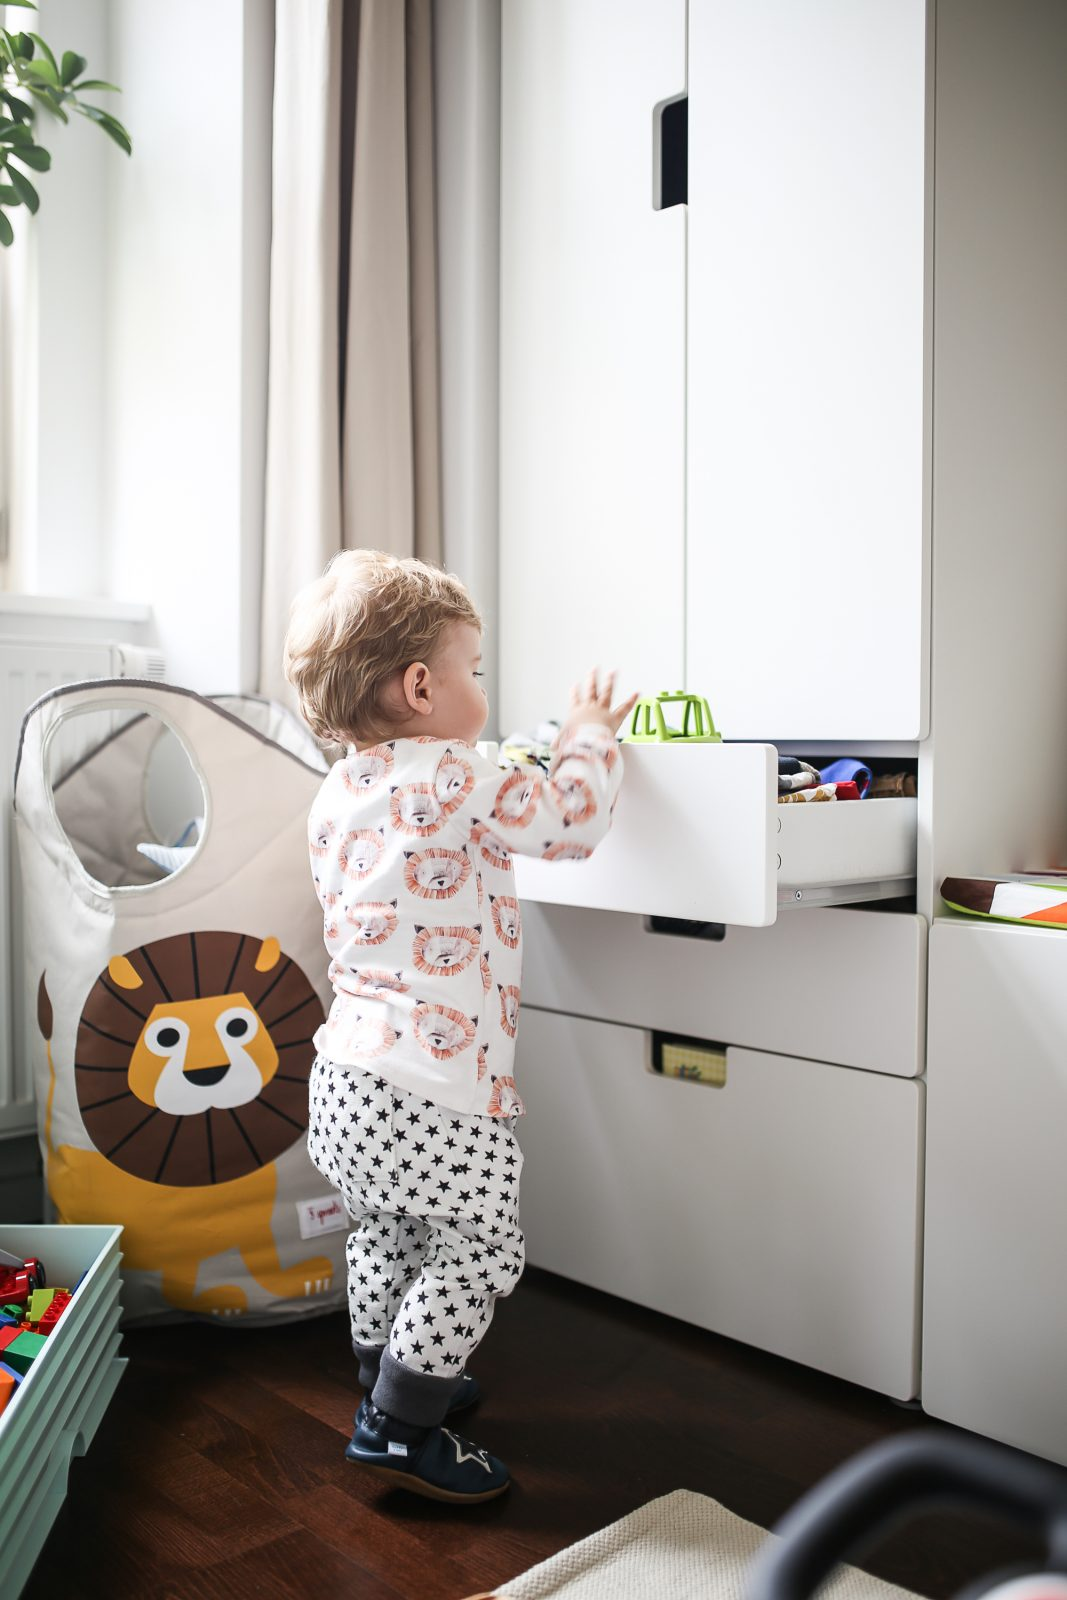 Ikea Möbel Kinderzimmer Pinspiration - Kids Interior | Design | Lifestyle | Family Travel Blog